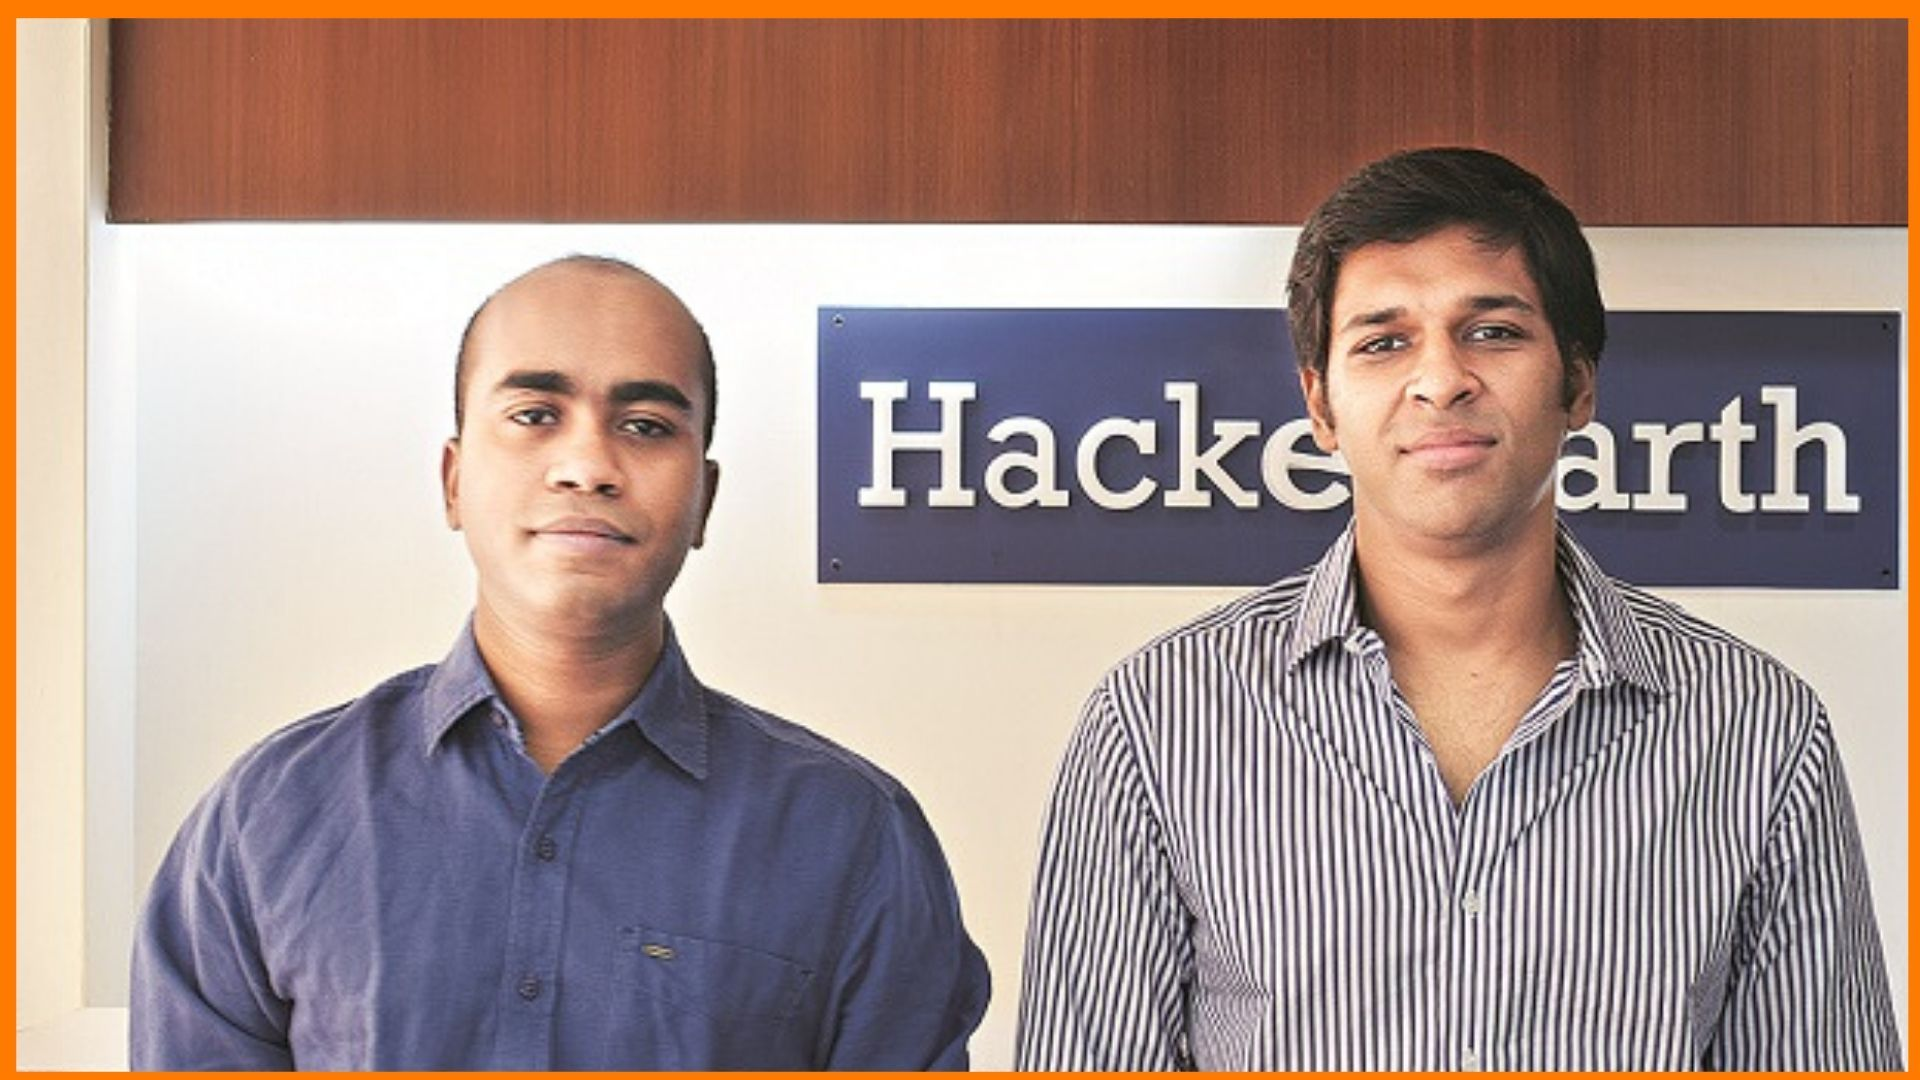 HackerEarth - Crowdsourcing Solutions from the Developers' Community!